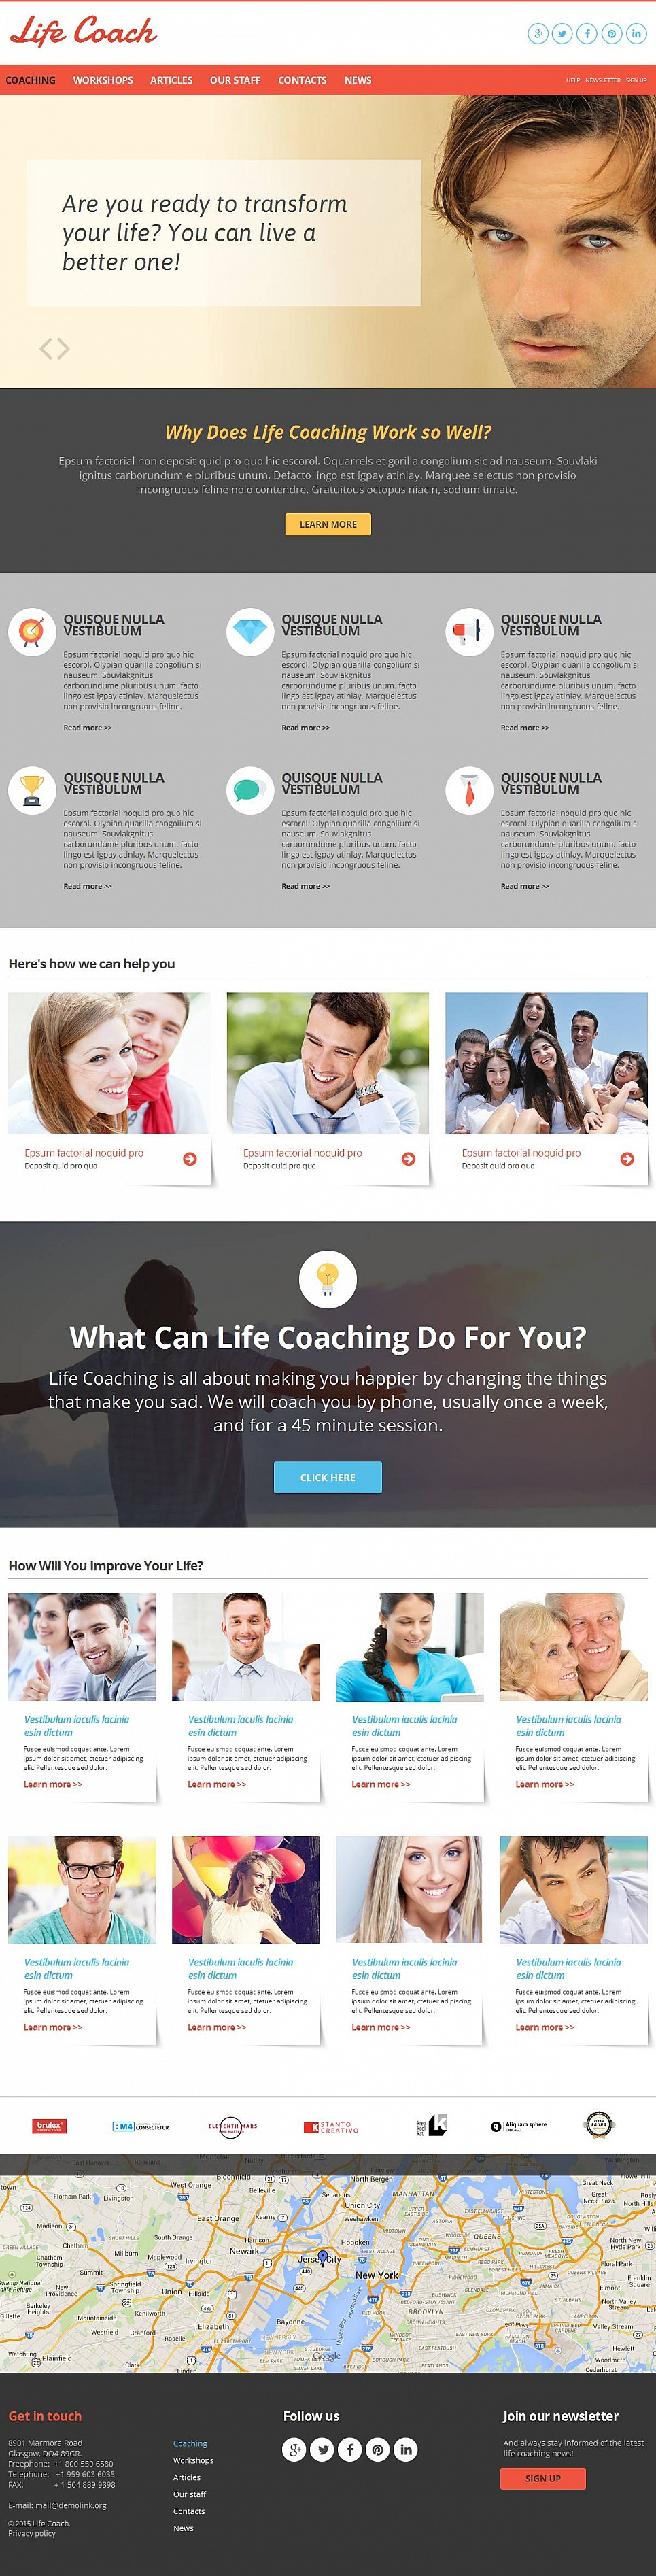 Life Coach Website Template with CMS - image